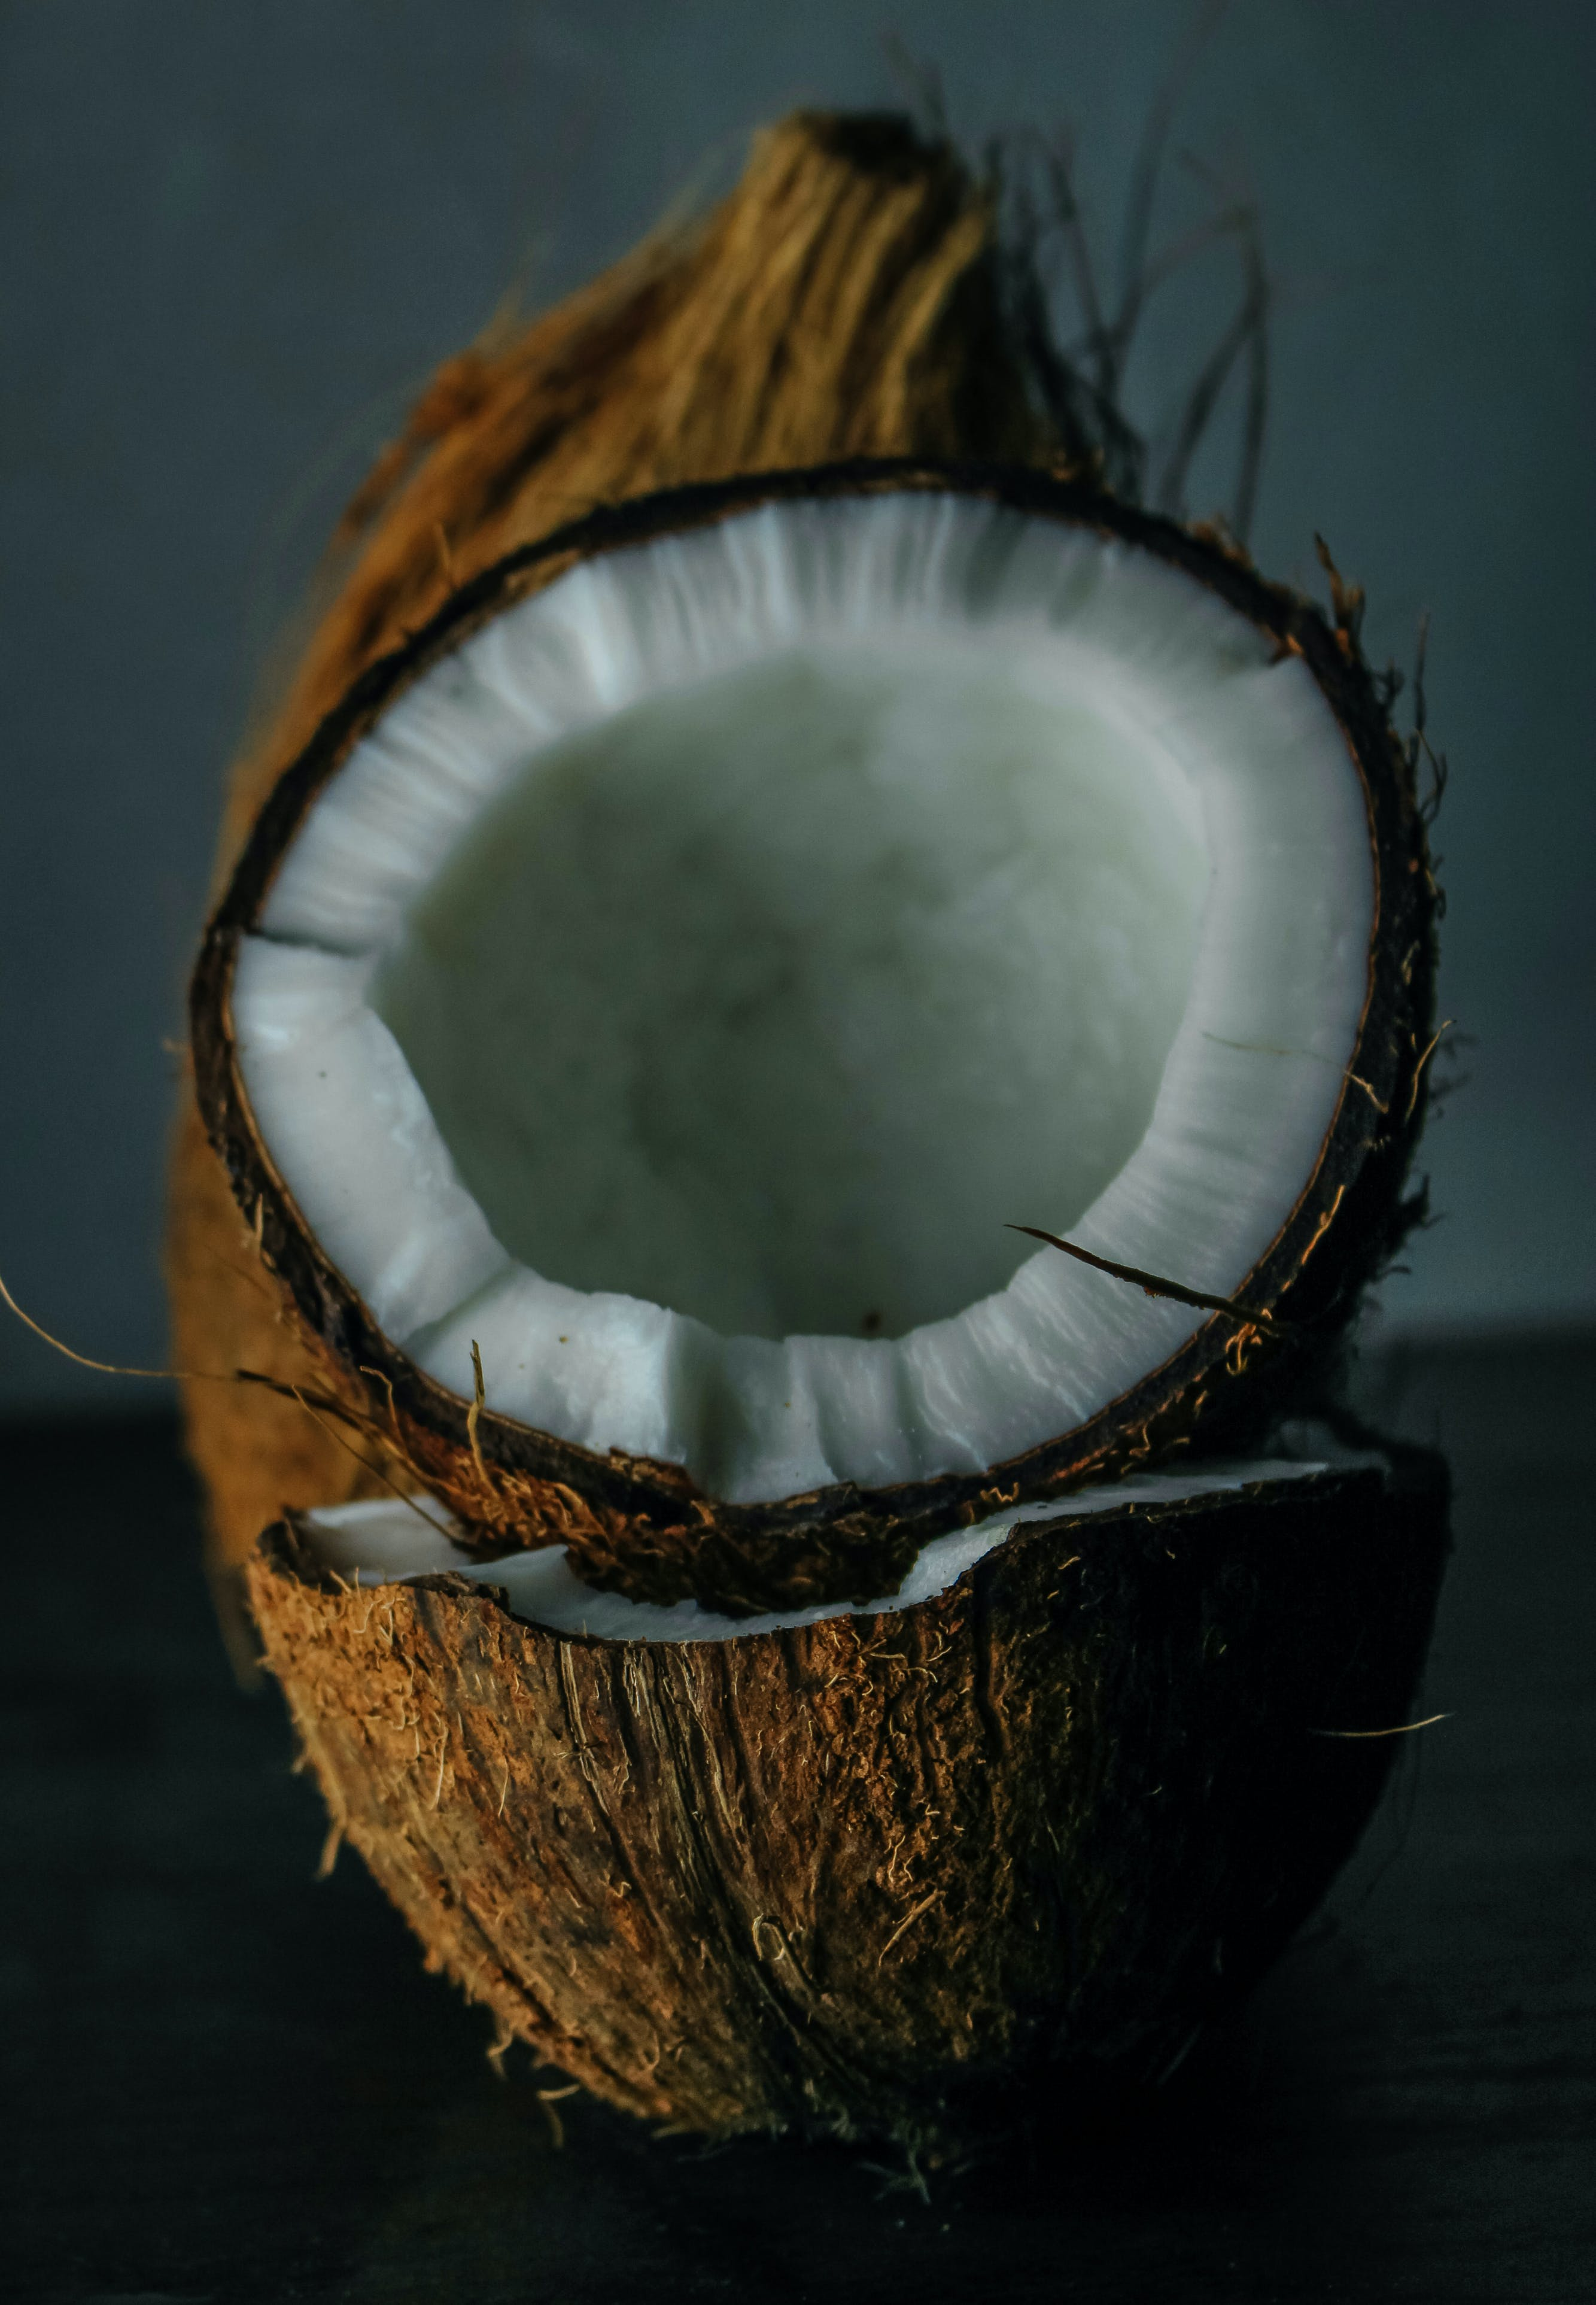 Close-Up Photo Of Coconut